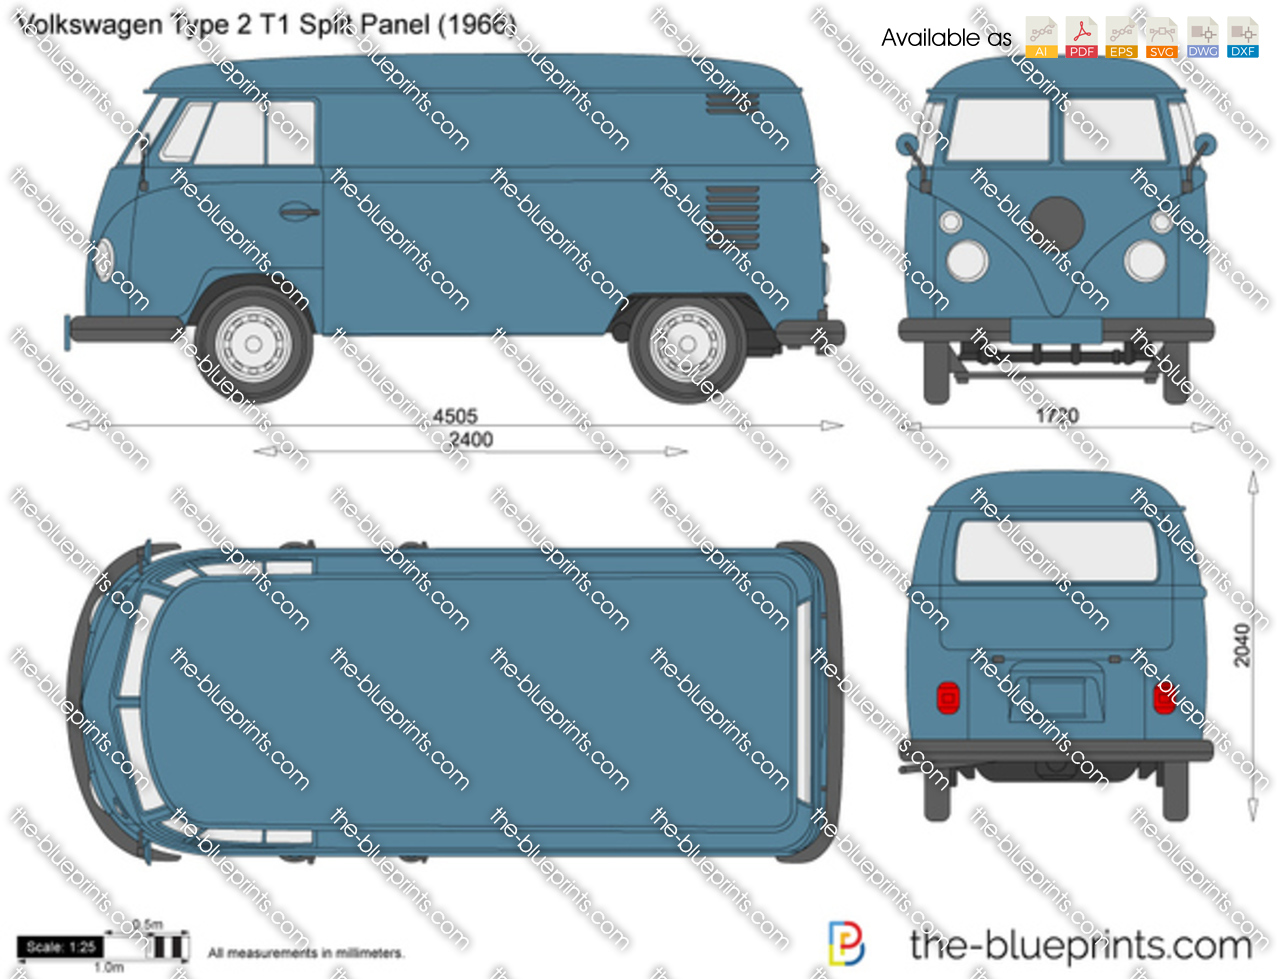 1955 Volkswagen Type 2 T1 Split Panel